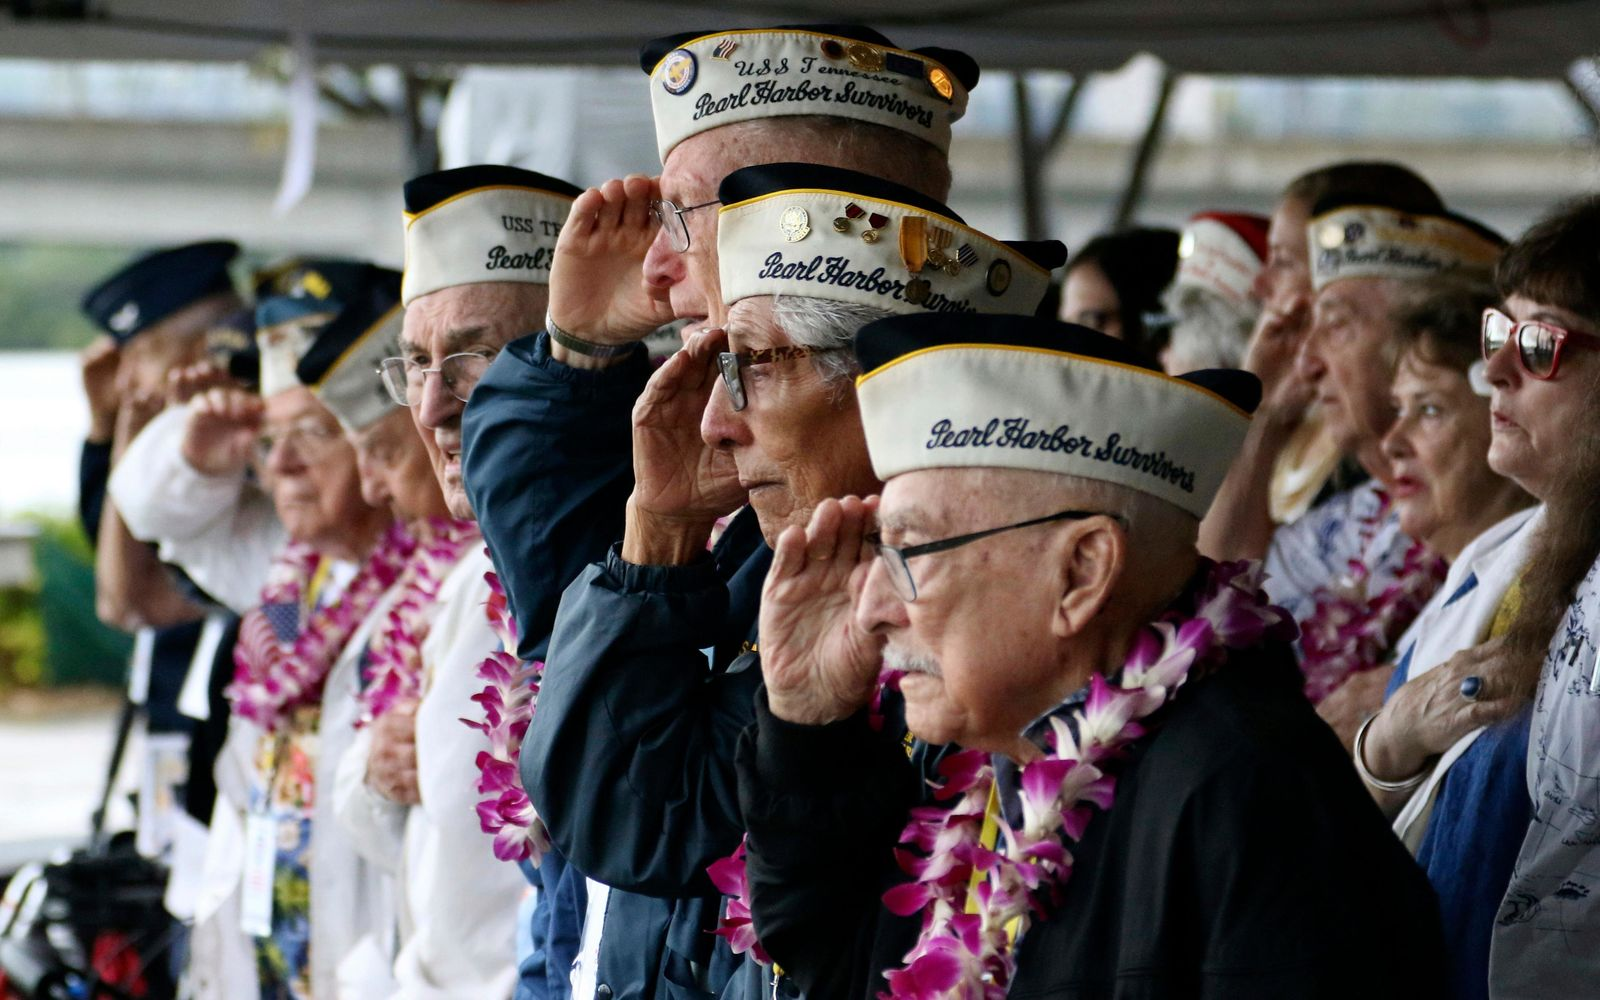 FILE - In this Dec. 7, 2018, file photo, Pearl Harbor survivors salute during the National Anthem at a ceremony in Pearl Harbor, Hawaii marking the 77th anniversary of the Japanese attack. Survivors and members of the public are expected to gather in Pearl Harbor on Saturday, Dec. 7, 2019, to remember those killed when Japanese planes bombed the Hawaii naval base 78 years ago and launched the U.S. into World War II. Organizers plan for about a dozen survivors of the attack to attend the annual ceremony, the youngest of whom are now in their late 90s. (AP Photo/Audrey McAvoy, File)